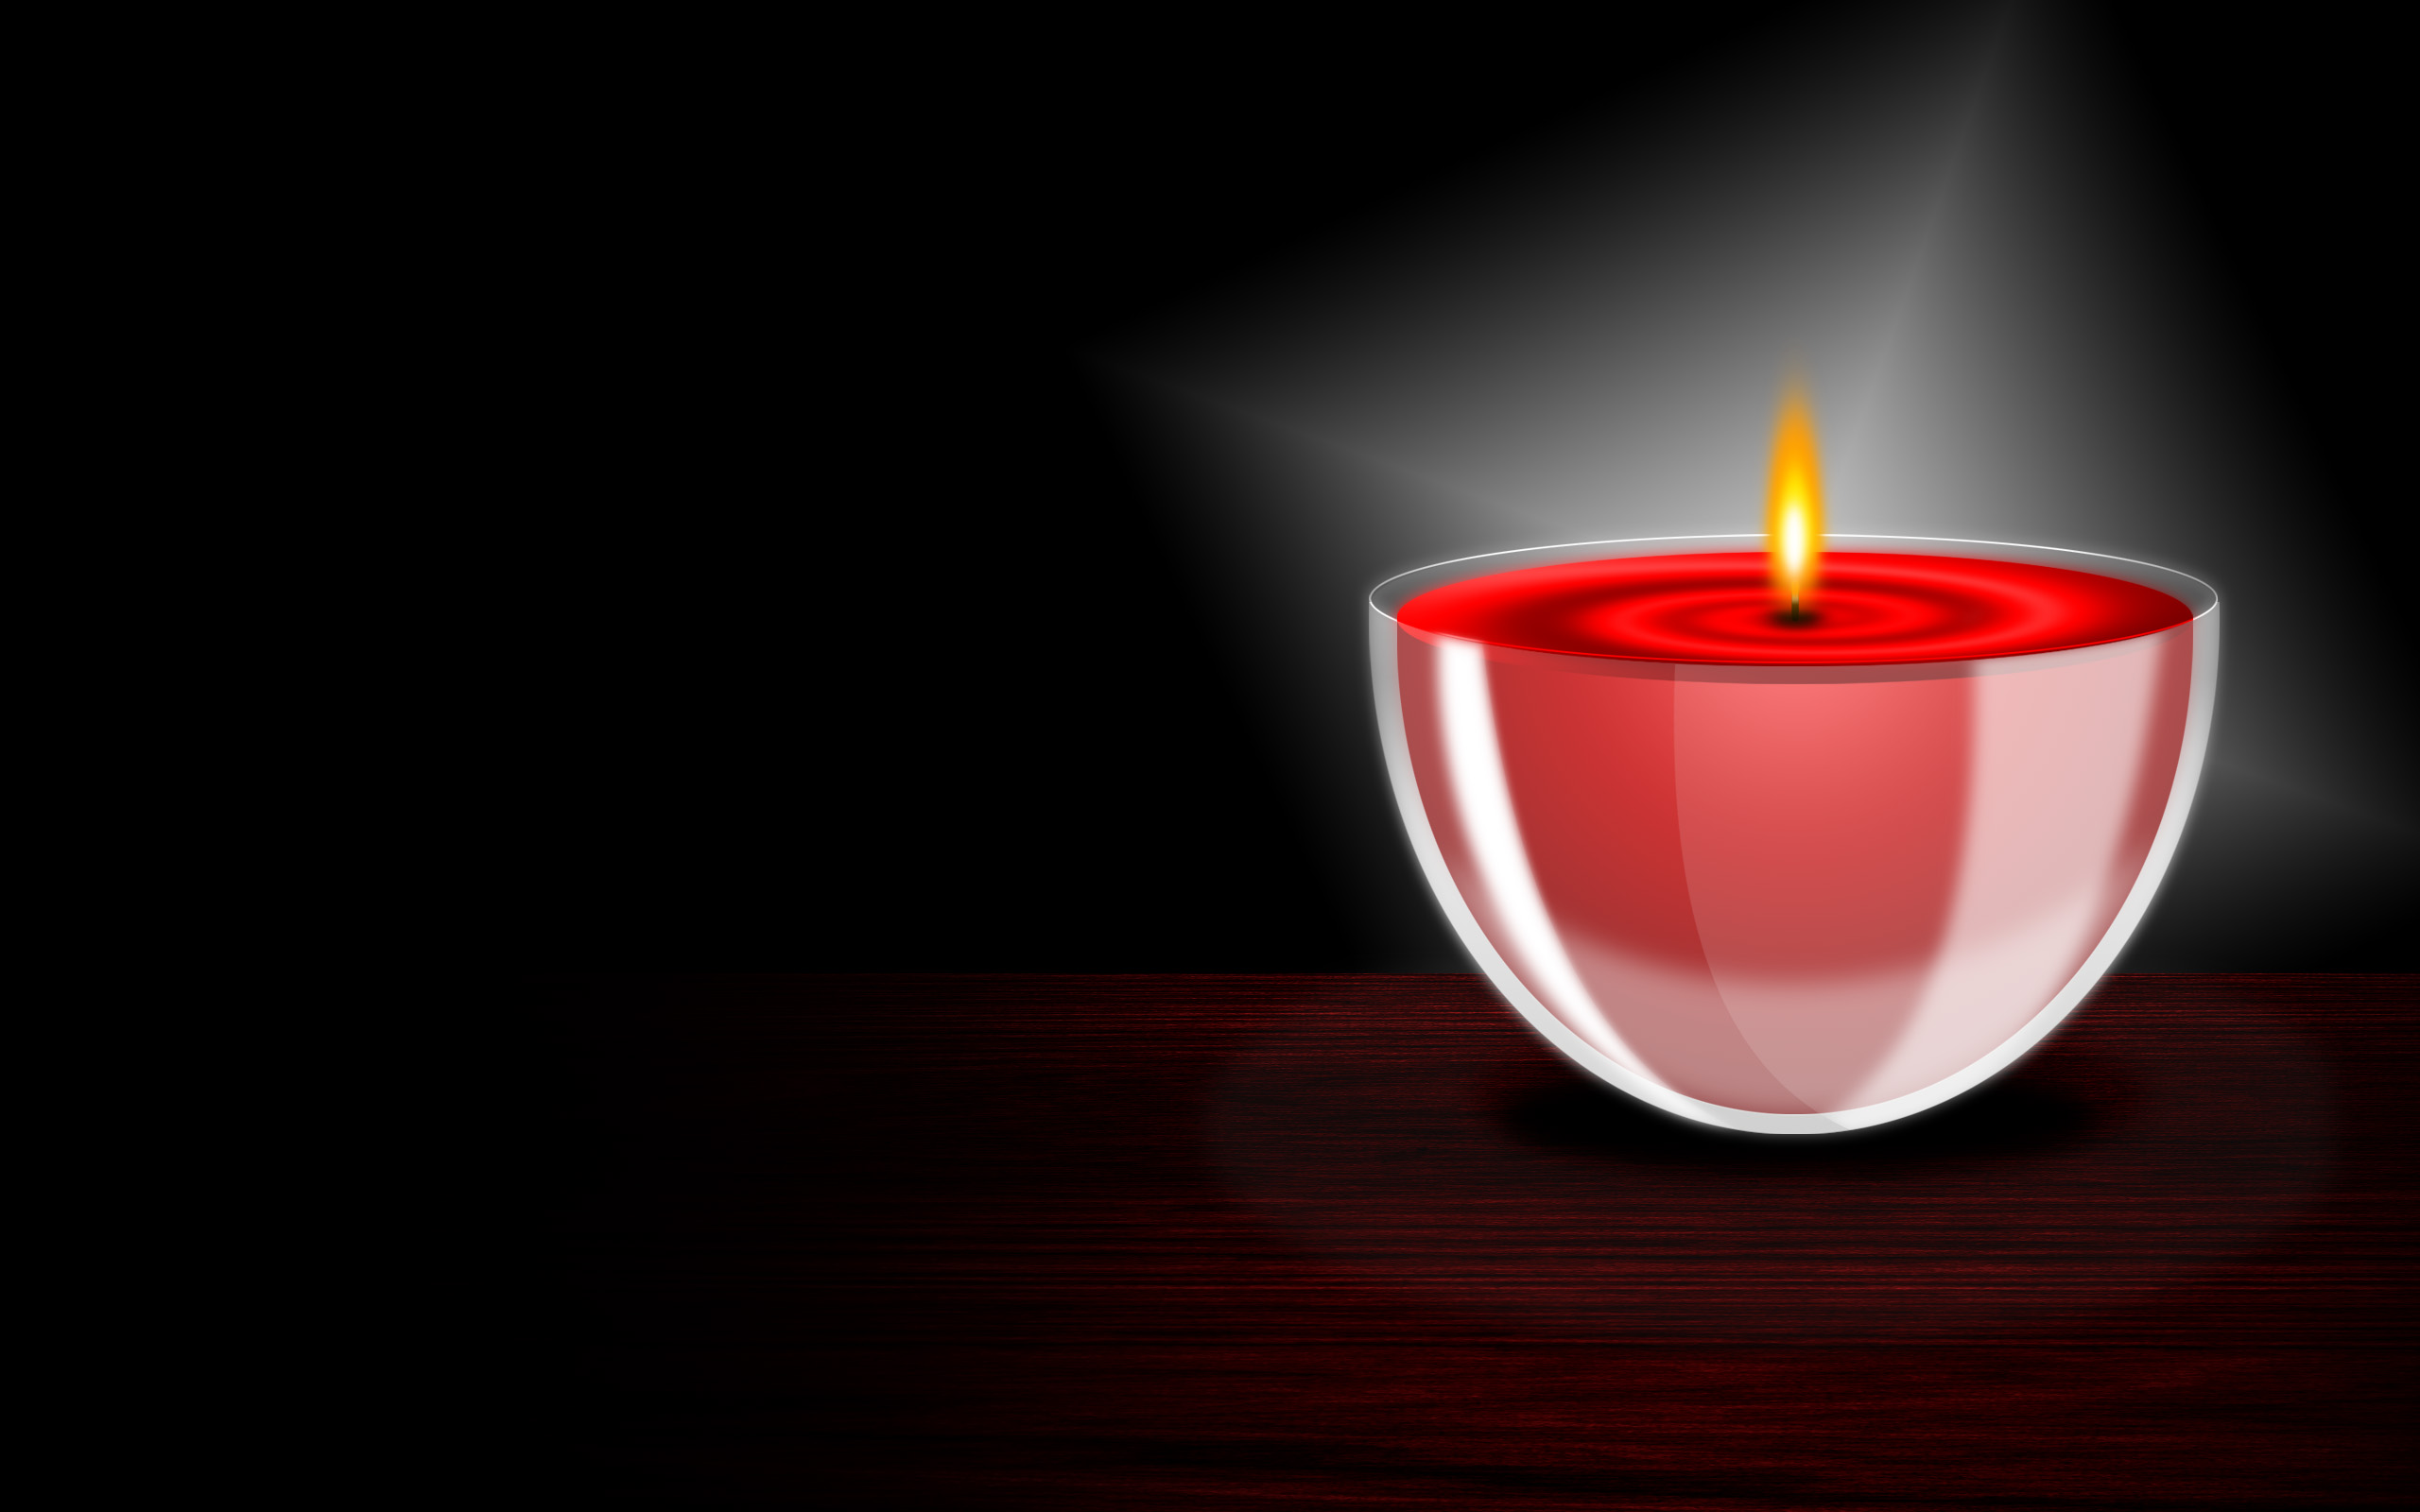 candle digital art wallpaper background 62082